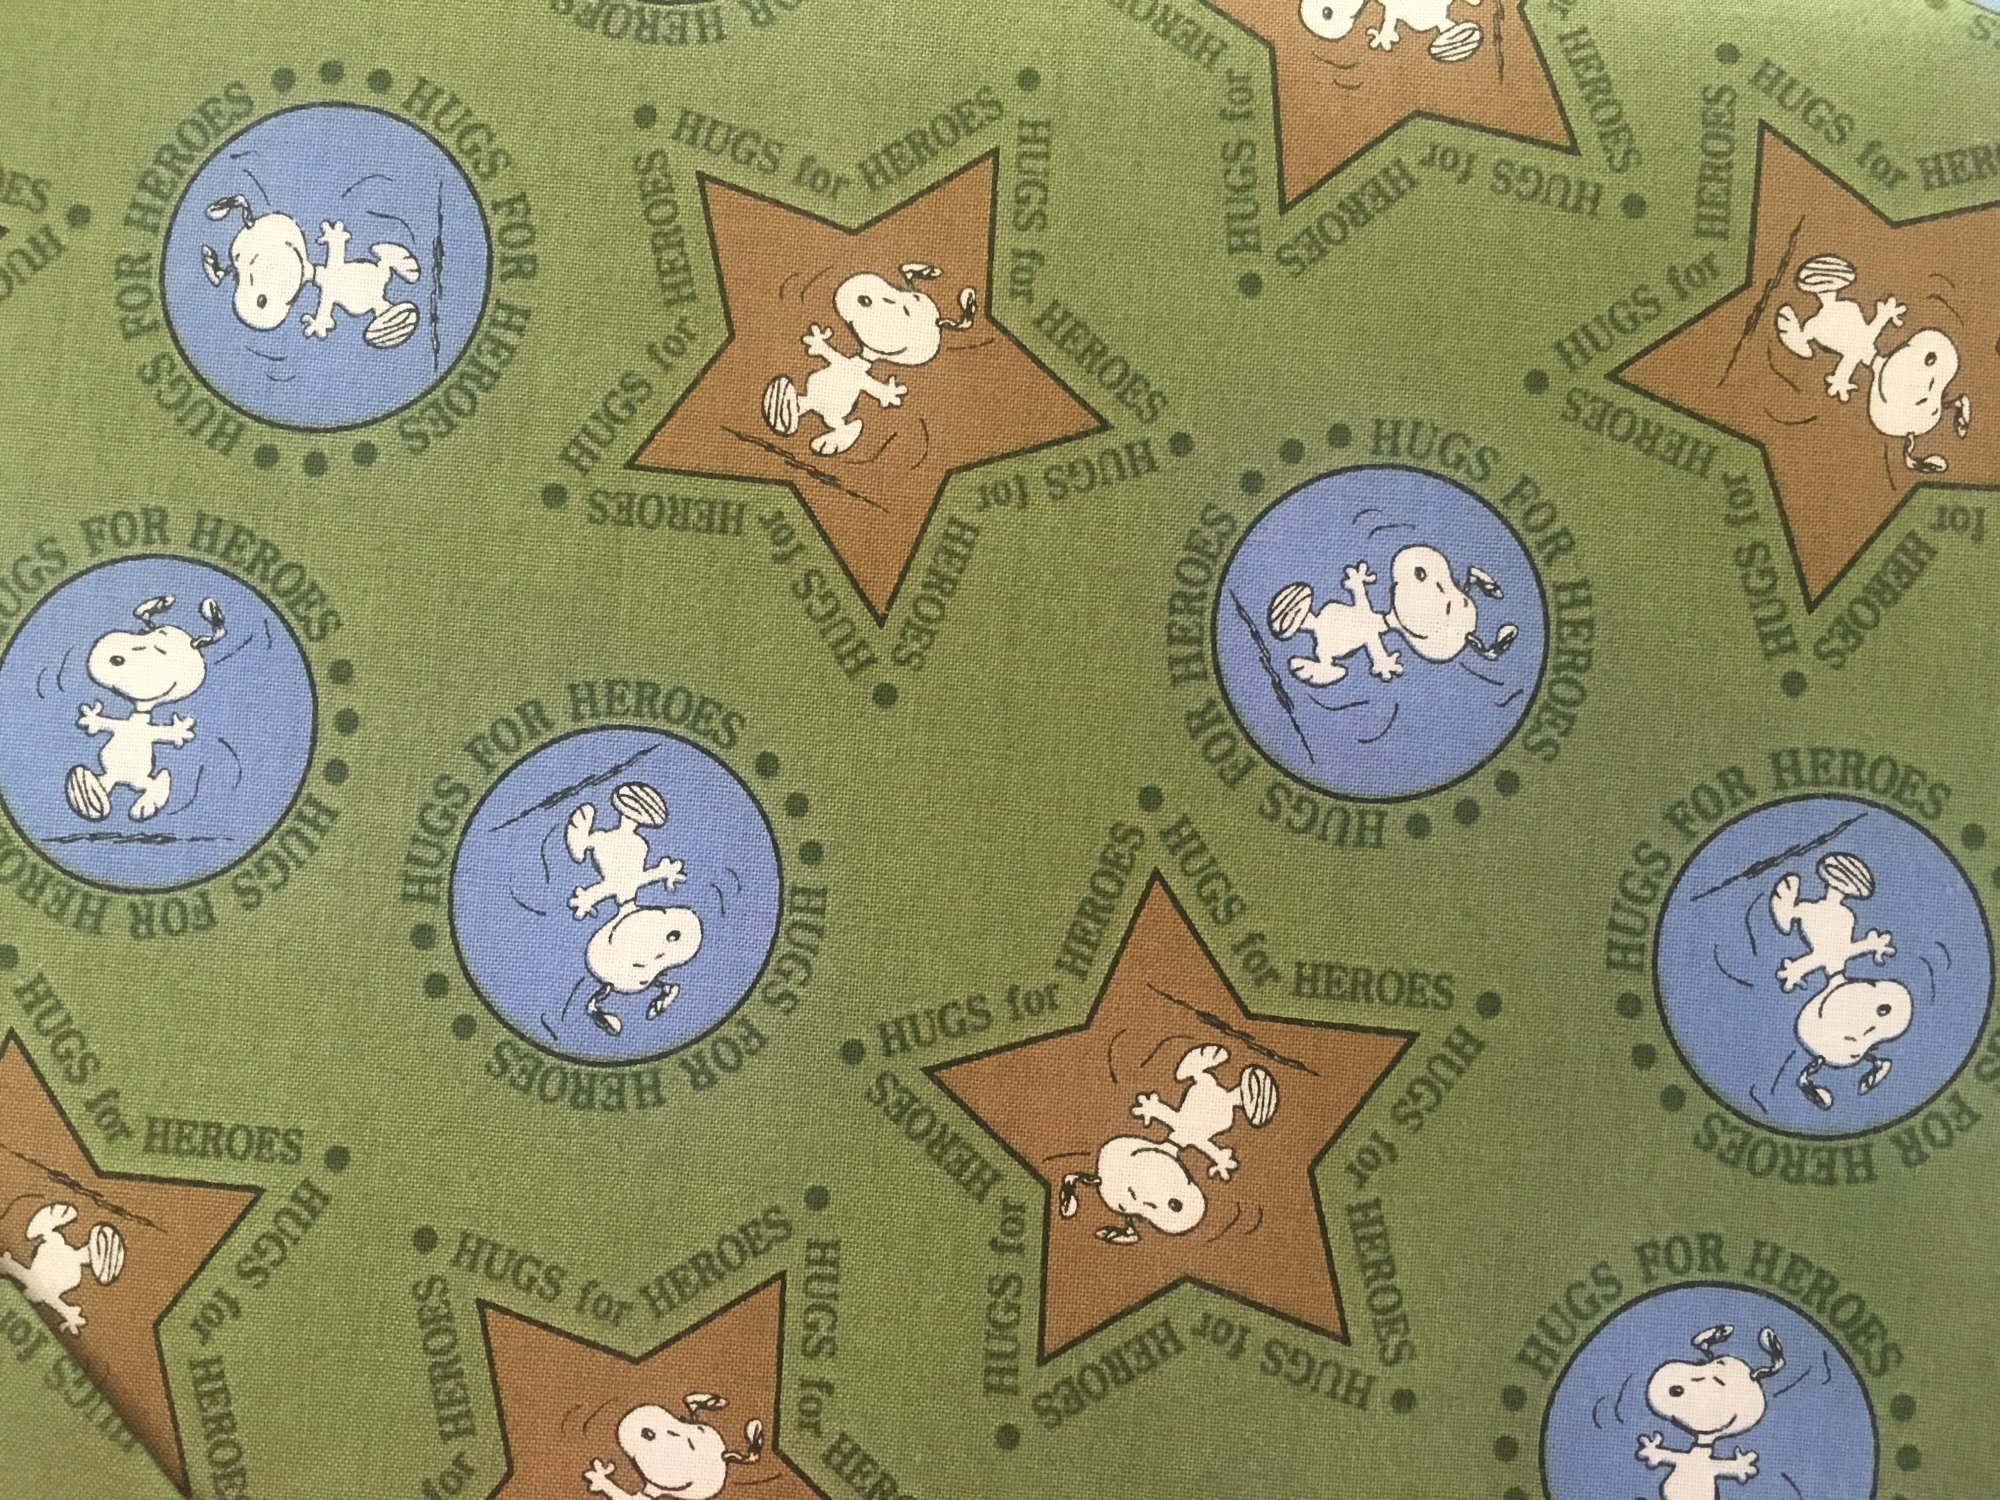 HUGS FOR HEROES MAIN GREEN 22772G Quilting Treasures QT